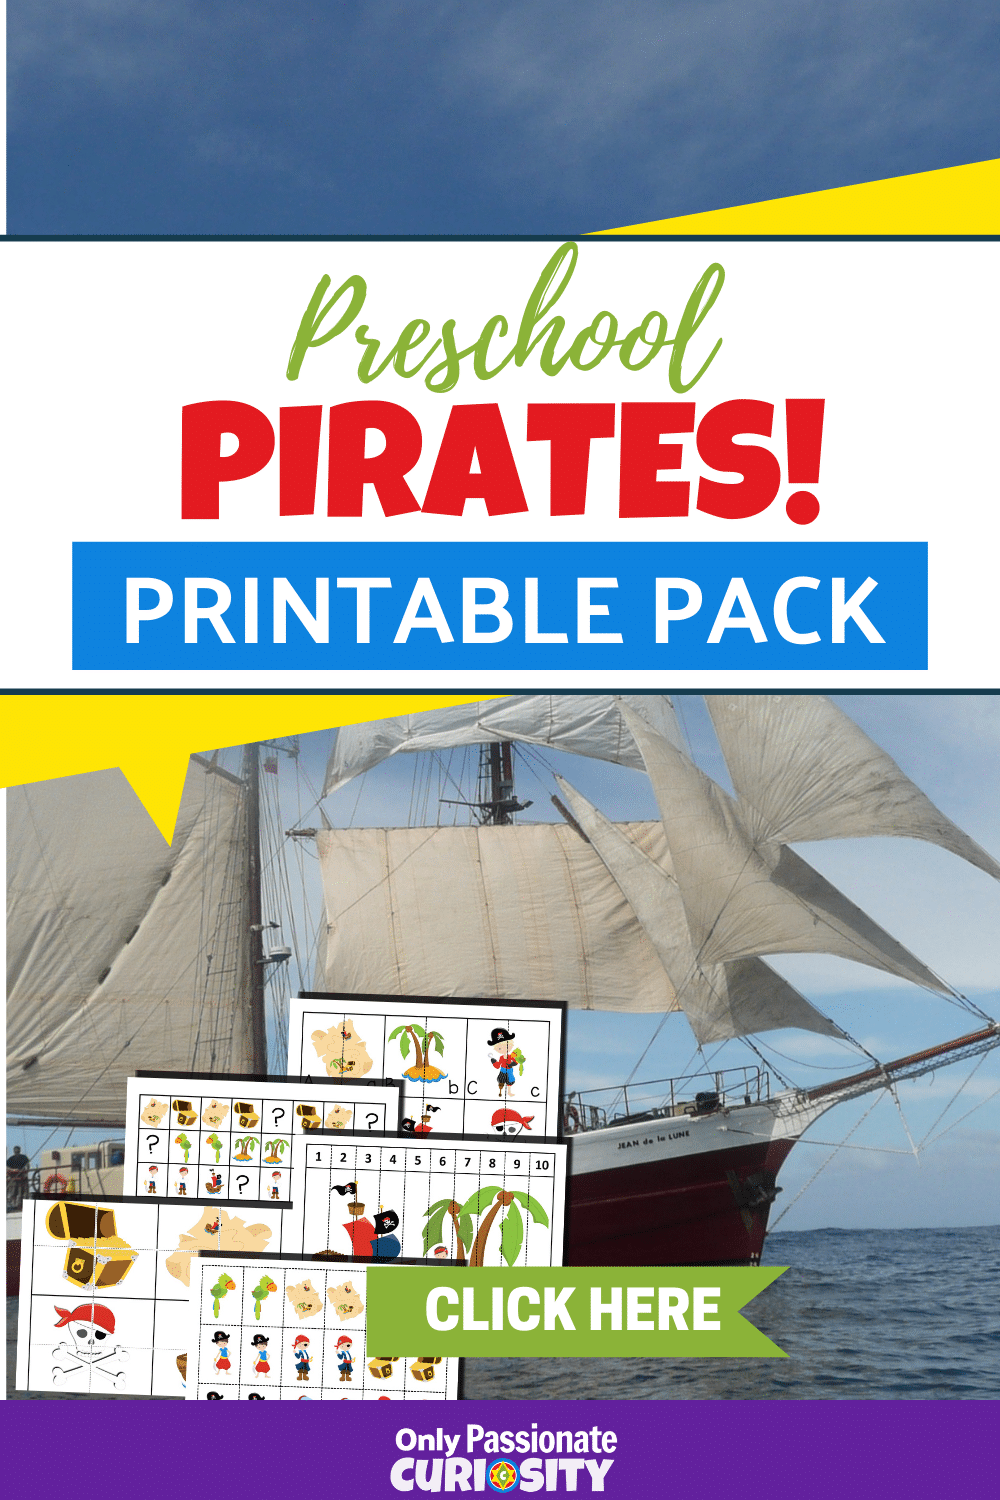 Got little pirates at your house? This fun printable pack is for them! It includes 20 activity pages with activities such as number sequencing, matching pictures, simple puzzles, tracing lines, patterns, ordering sizes, matching uppercase and lowercase letters, coloring pages, number recognition and 1:1 ratio, and even a pirate-themed tic-tac-toe game!